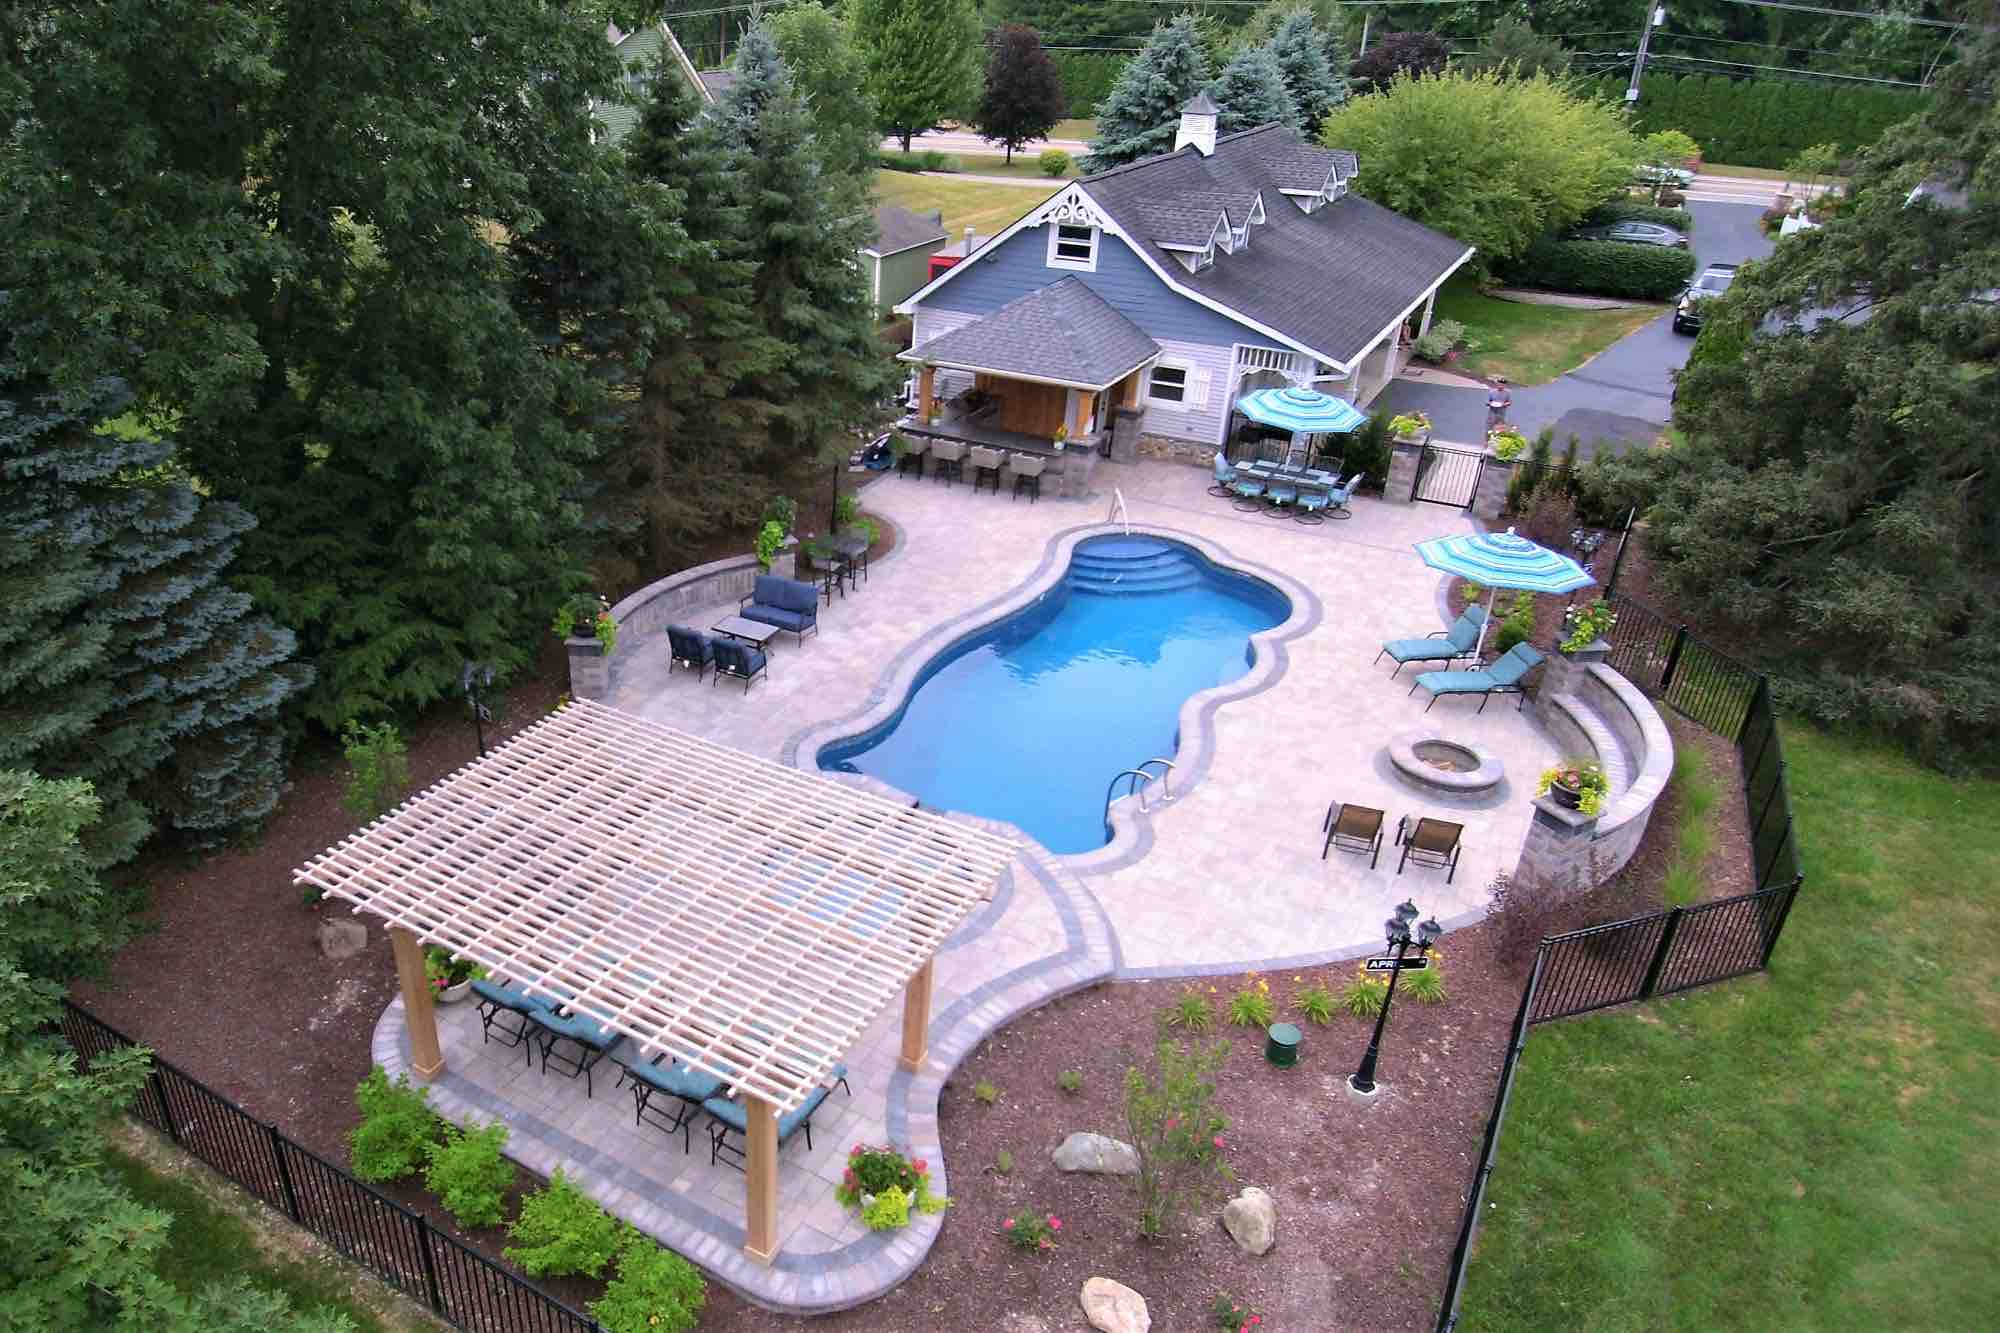 aerial view of pool and poolside lounge with outdoor kitchen and fire pit